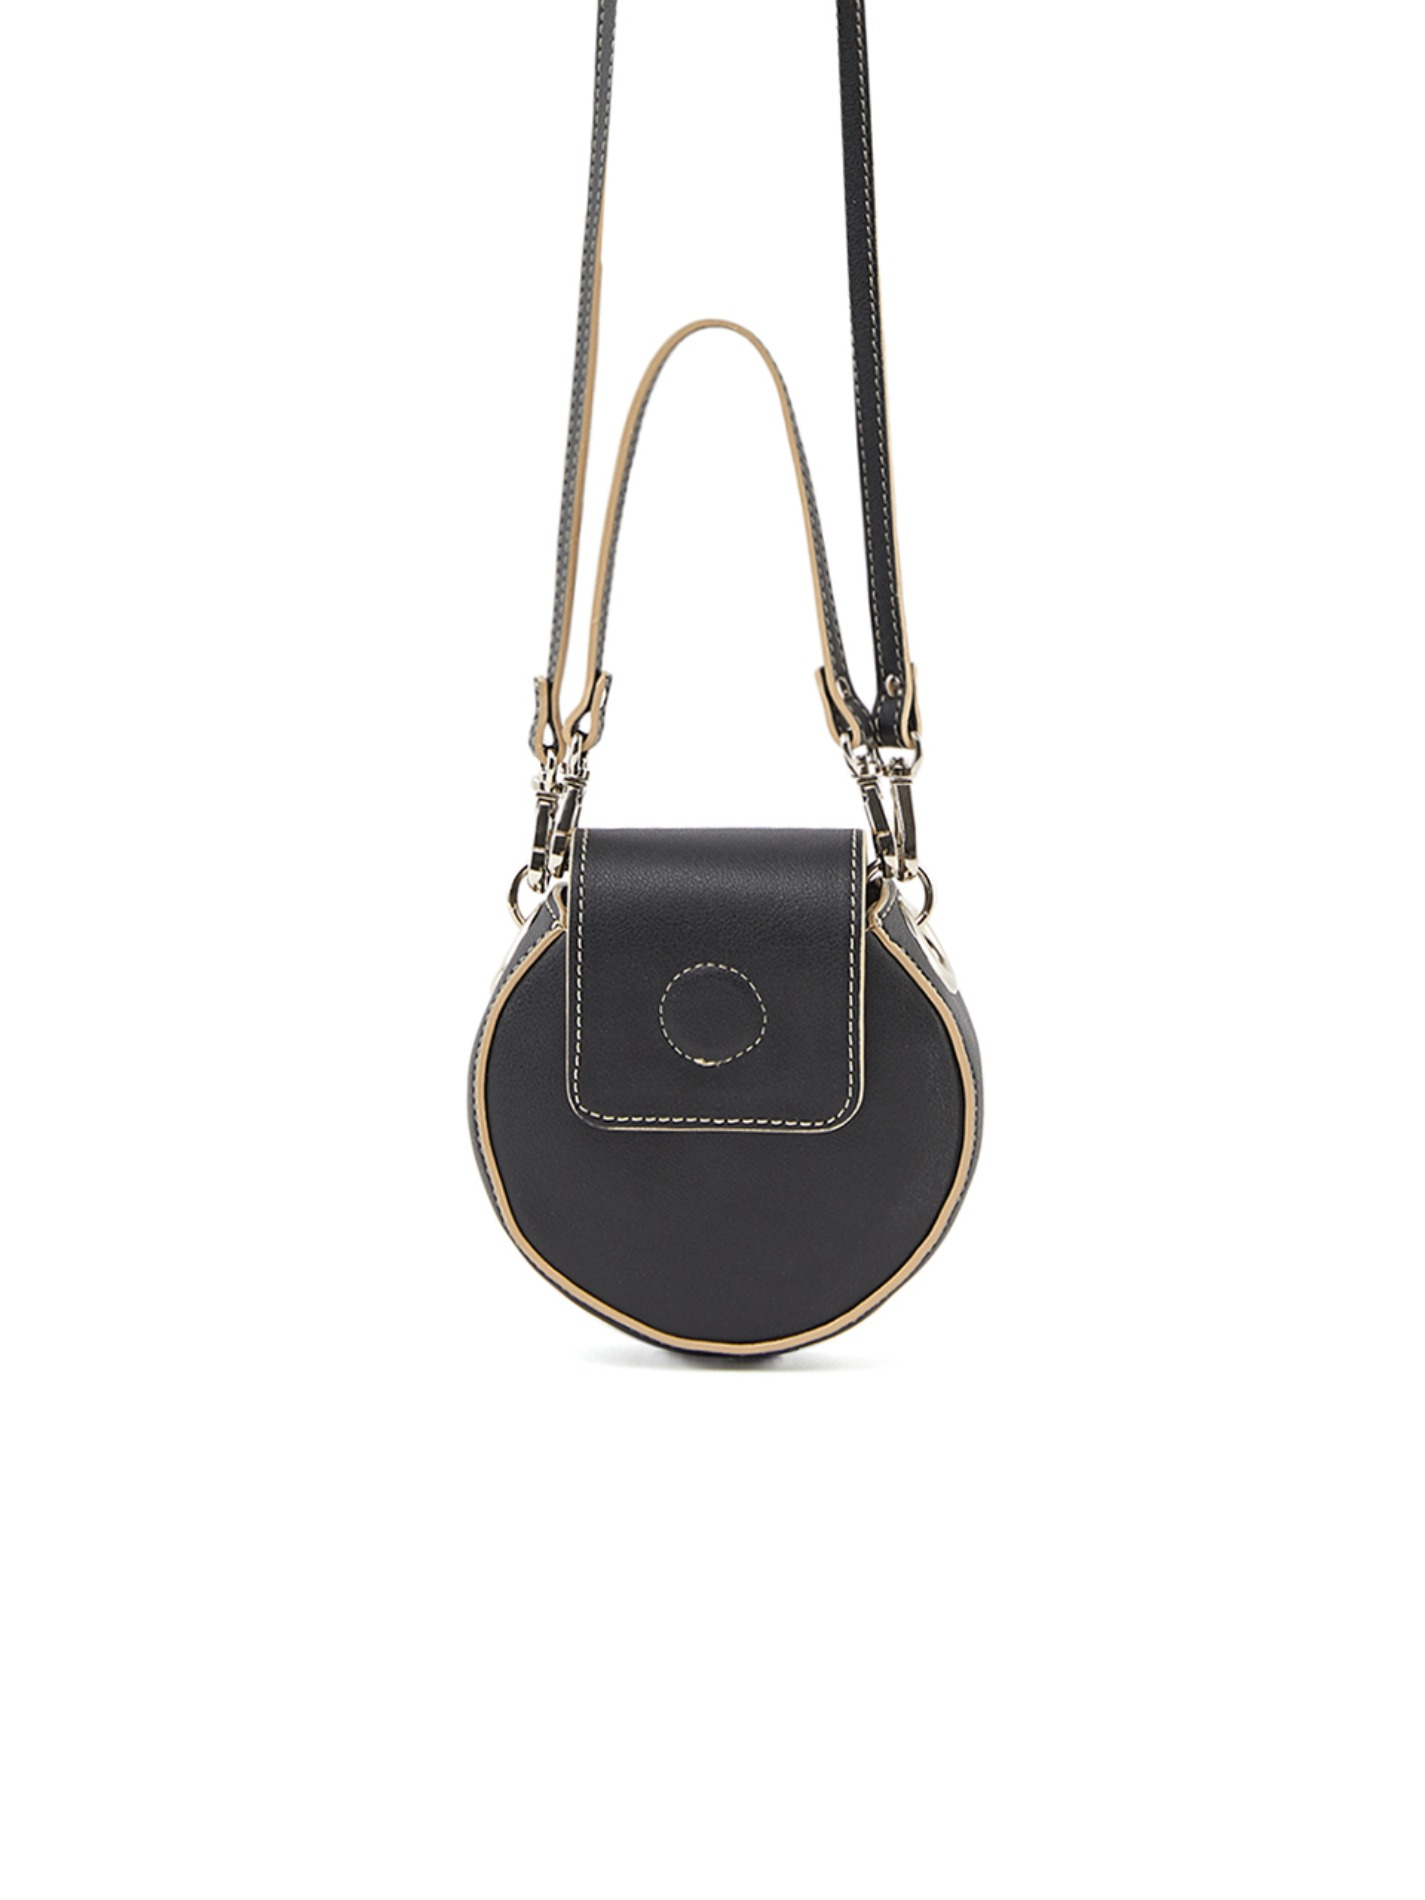 [by Atelier] NANO CIRCLE BAG _ BLACK